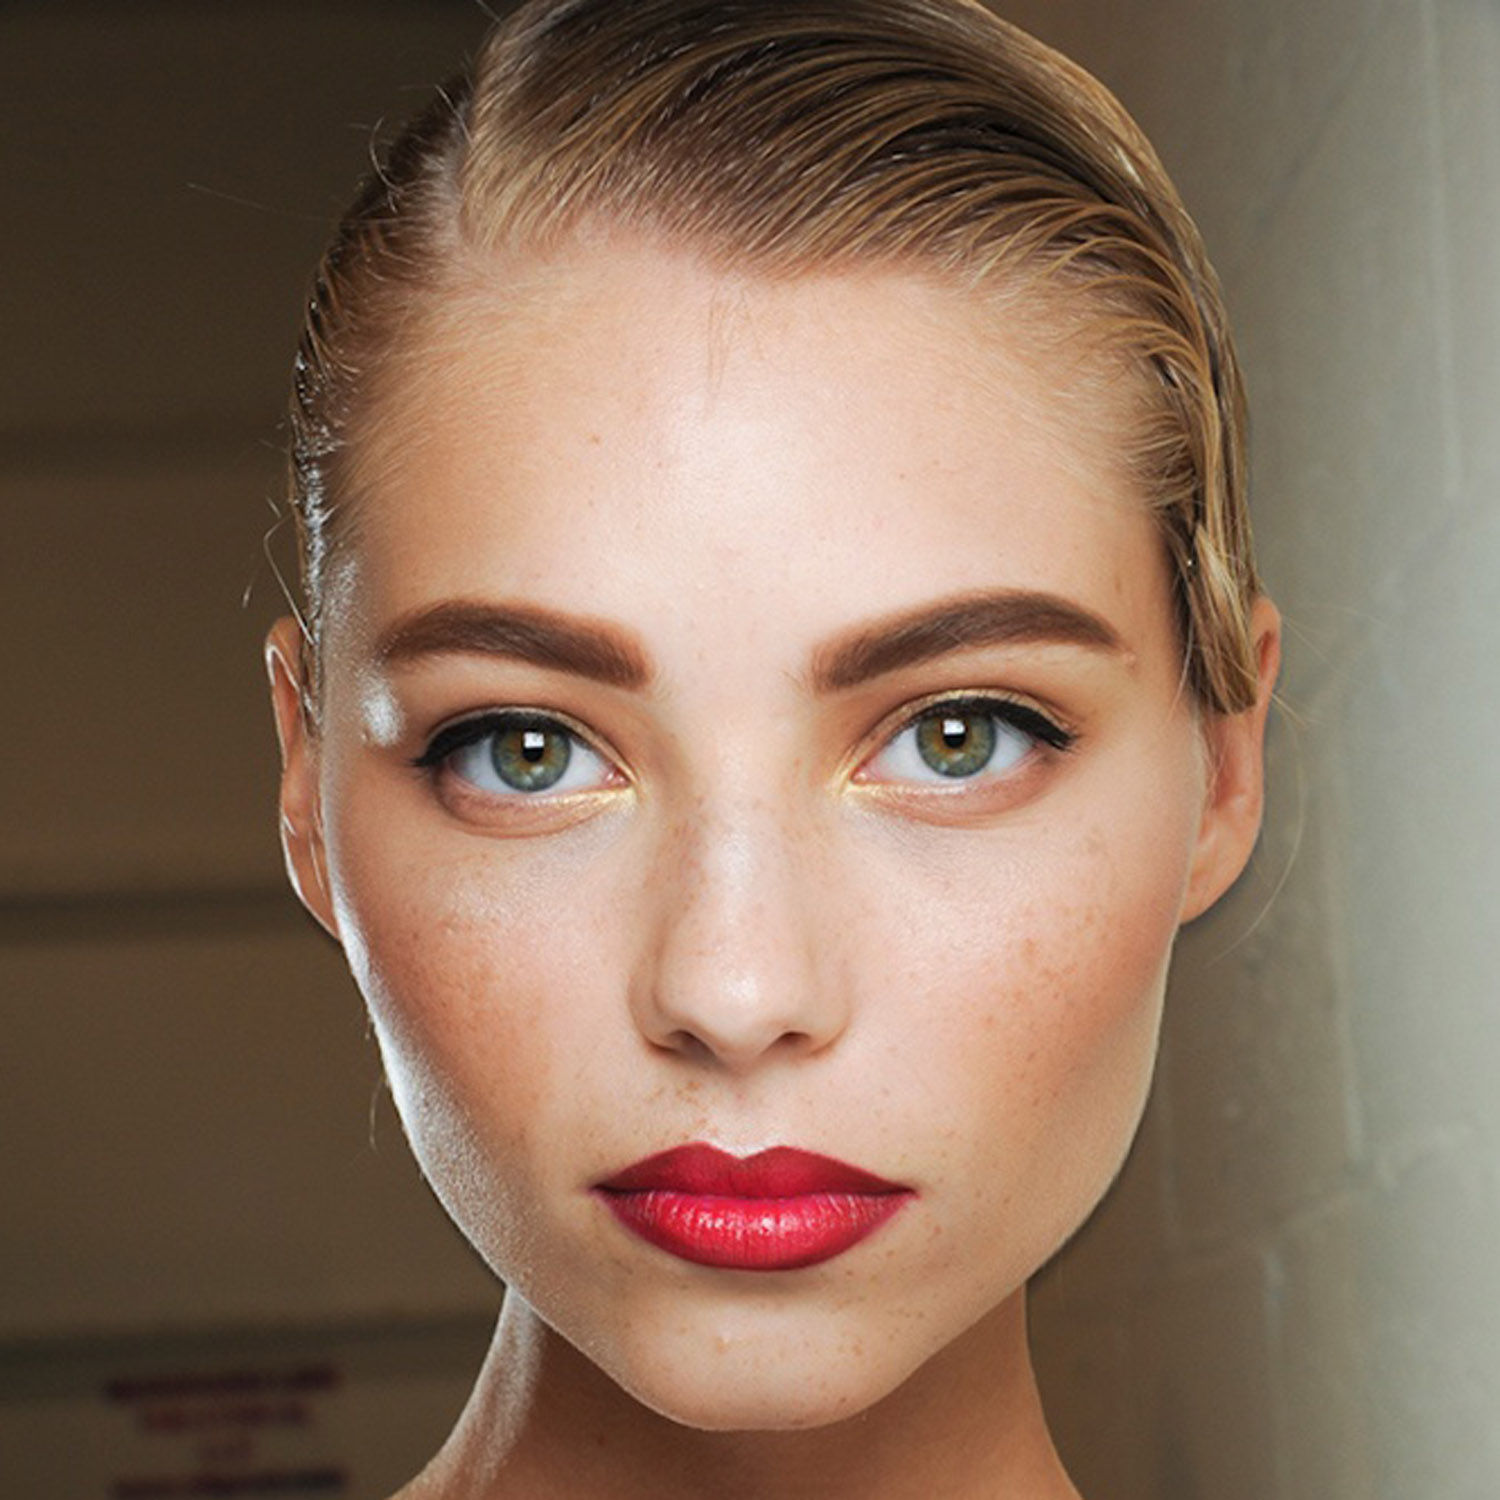 Latest Beauty News: The Bold Eyebrow Trend